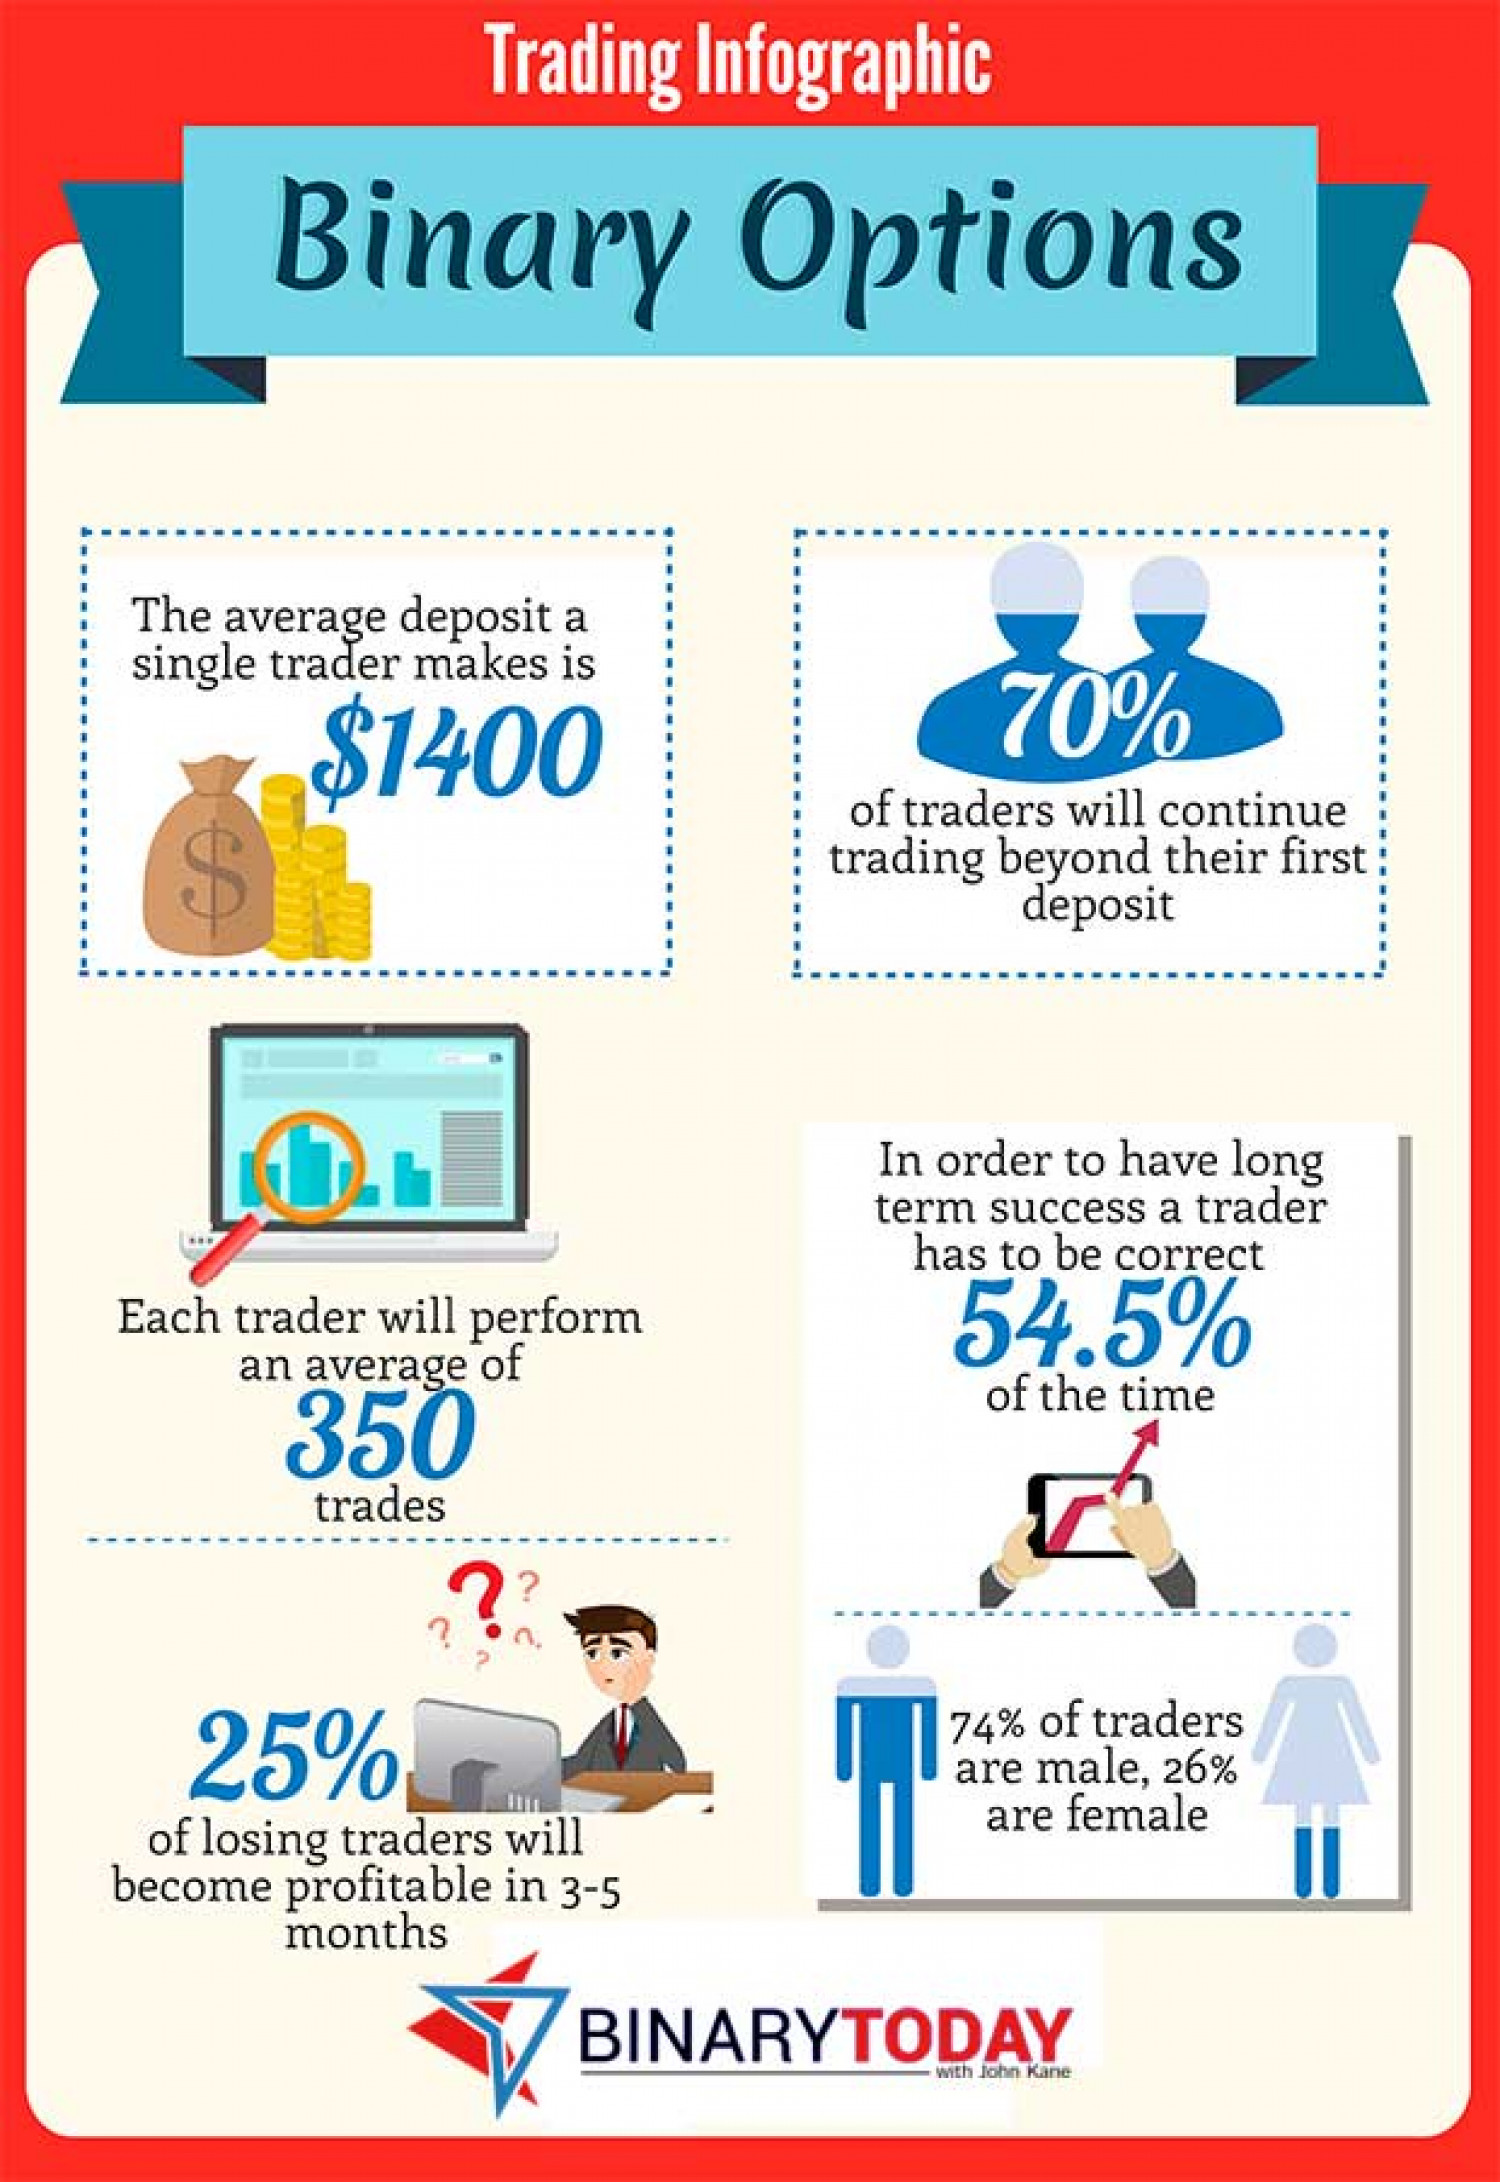 binary option infographic create